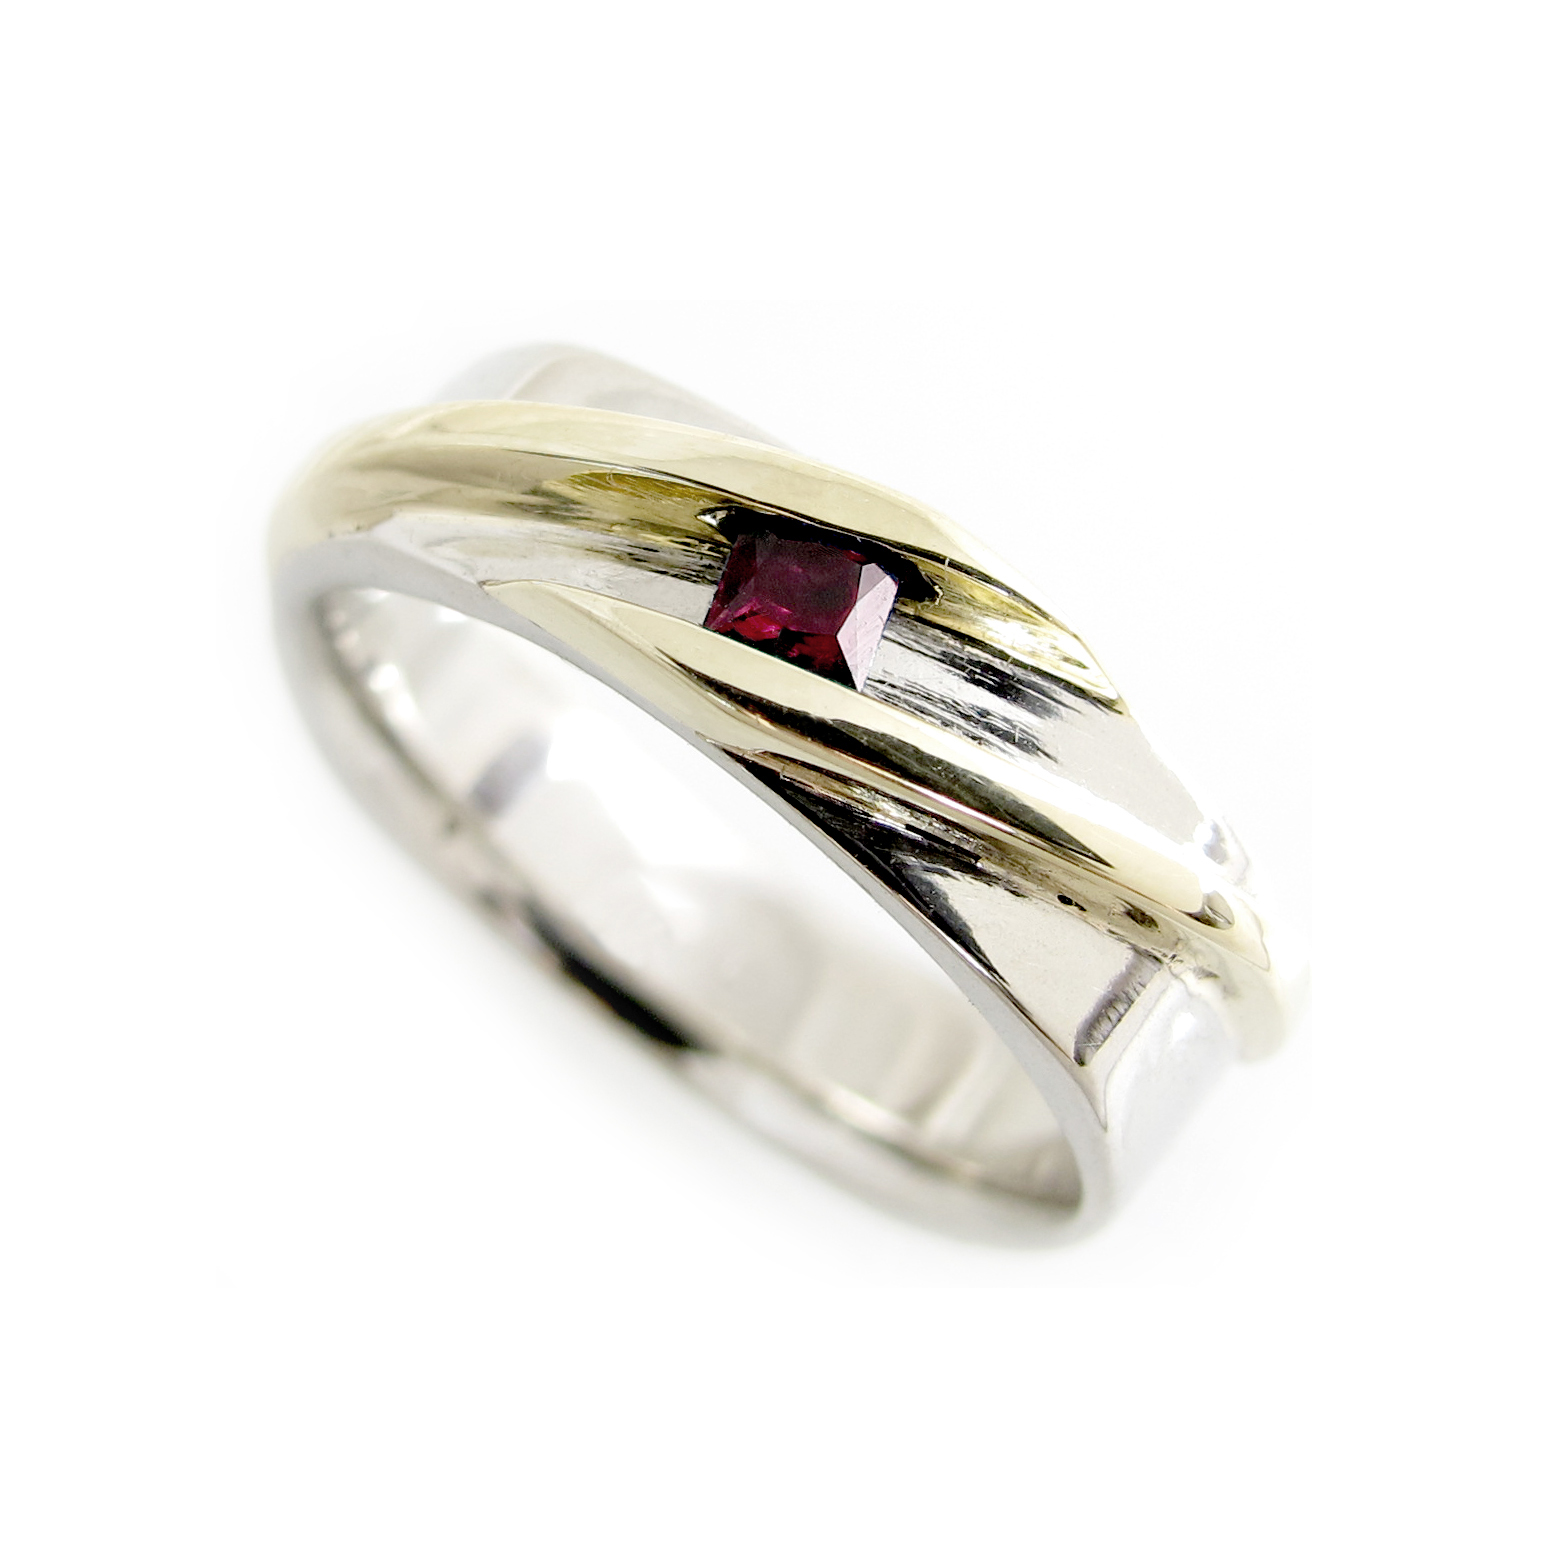 Modern Two Tone Gold Ring with Princess Cut Genuine Ruby